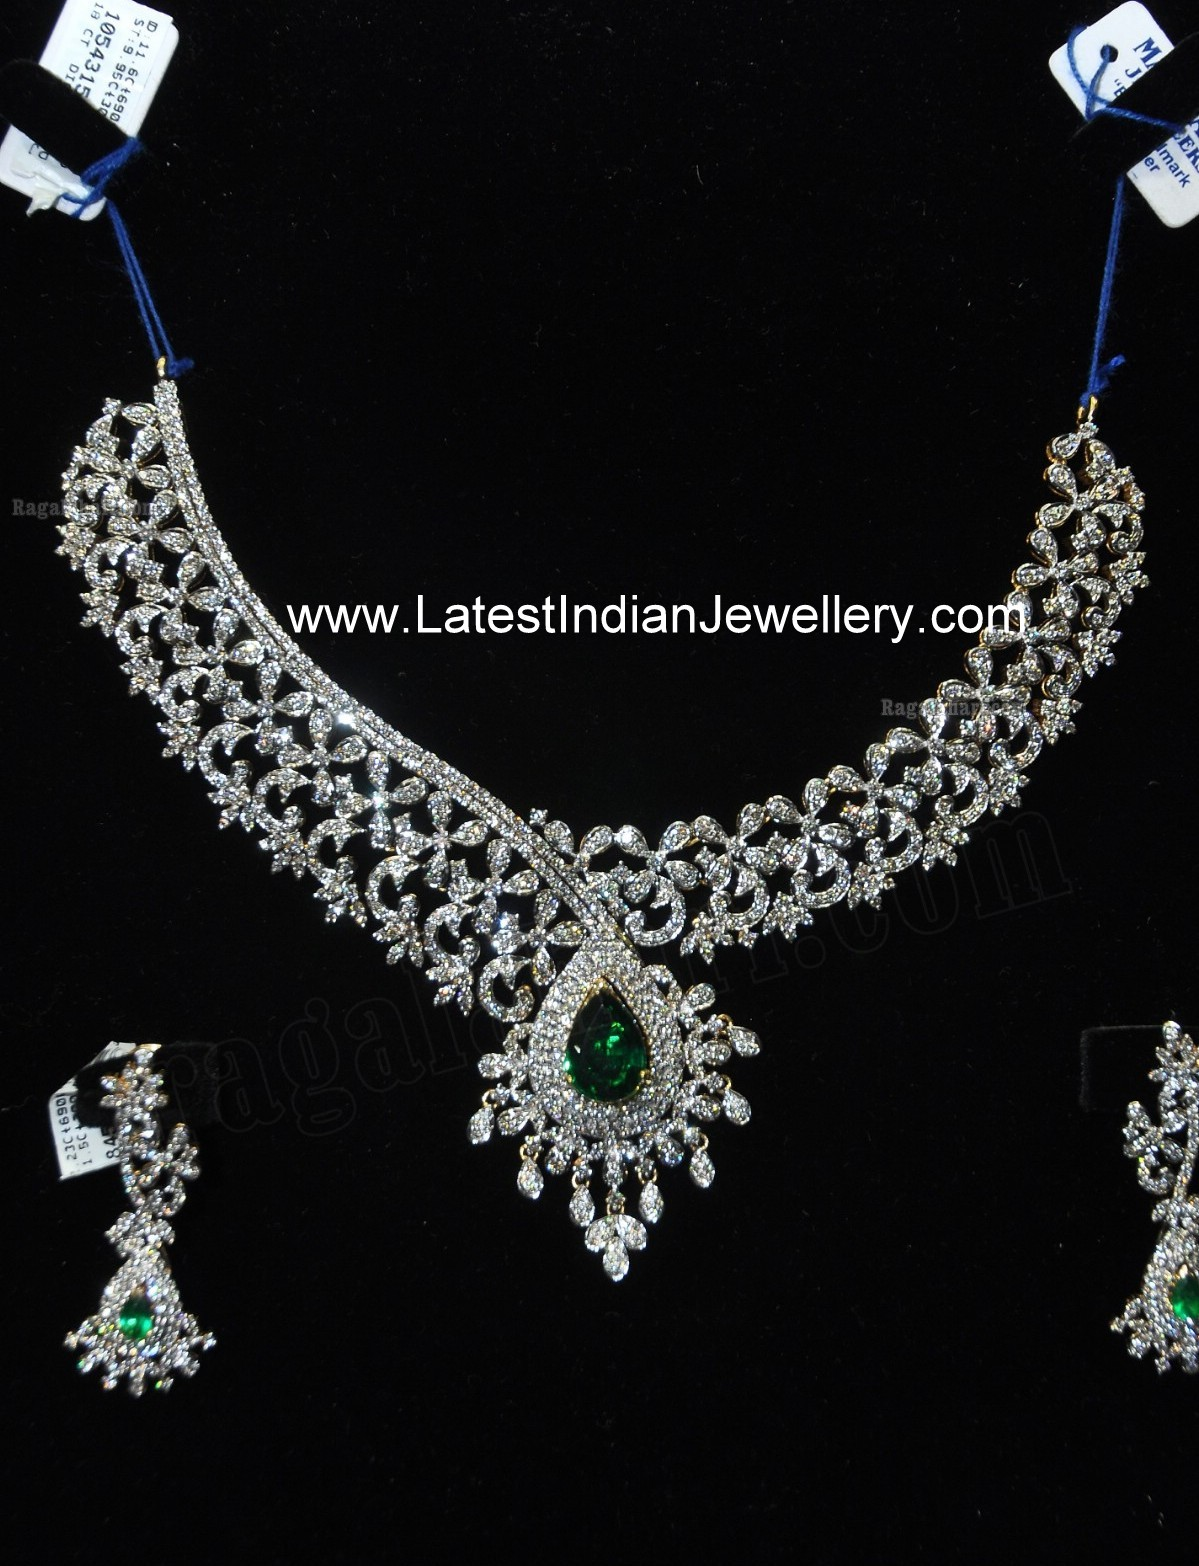 Designer Indian Diamond Necklace Set With Emeralds From ...